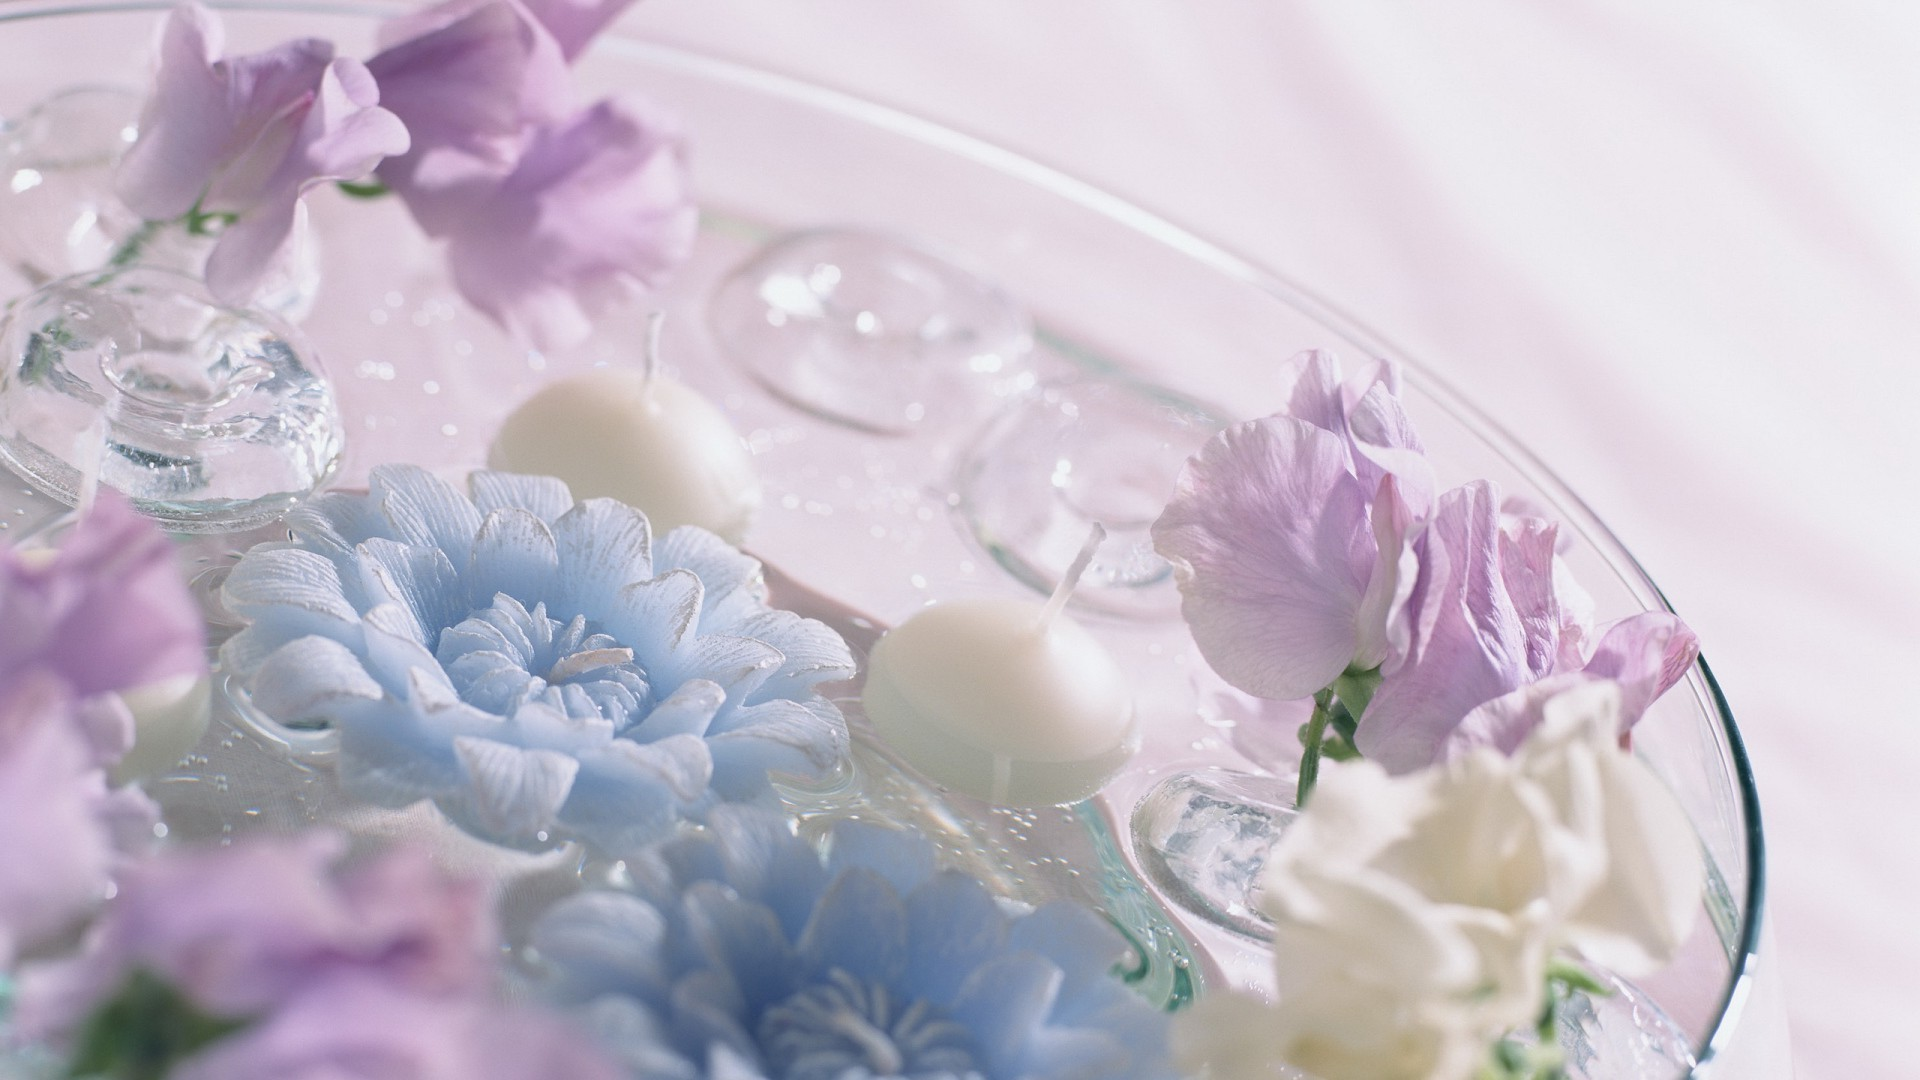 Soap, flowers, candles